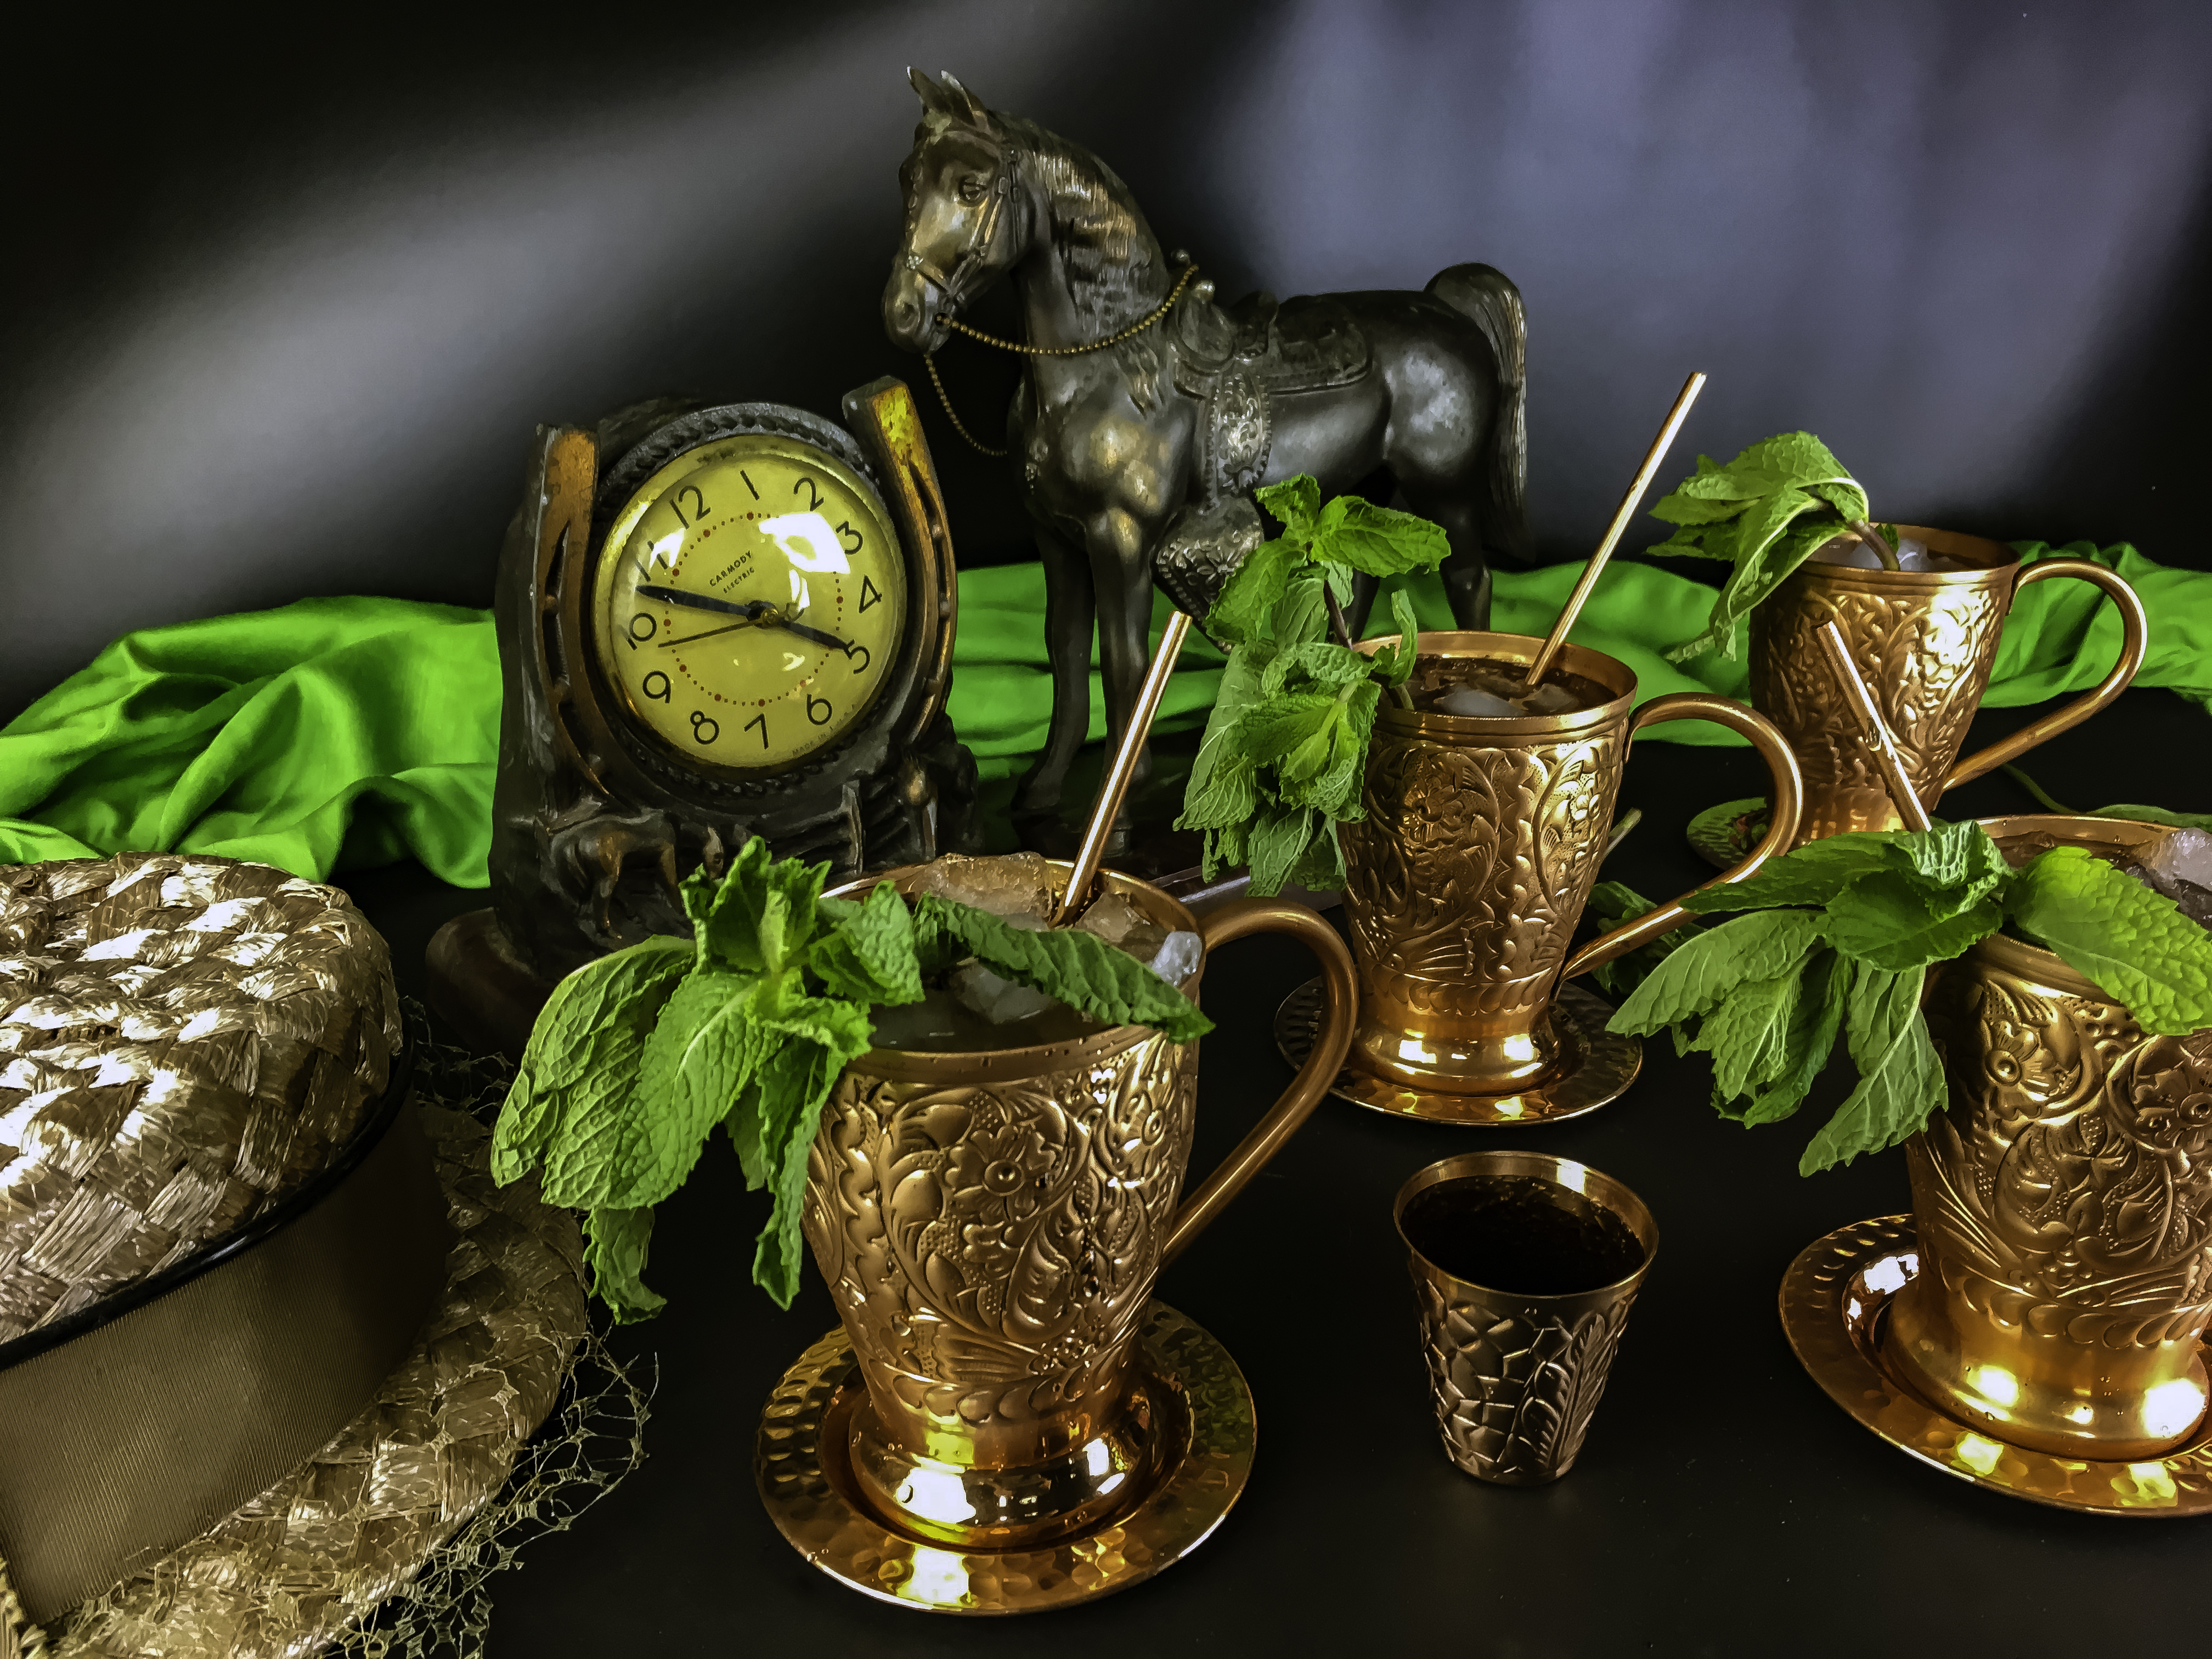 Kentucky Derby Recipe: A Less Sweet Mint Julep Recipe featuring Kamojo Moscow Mules